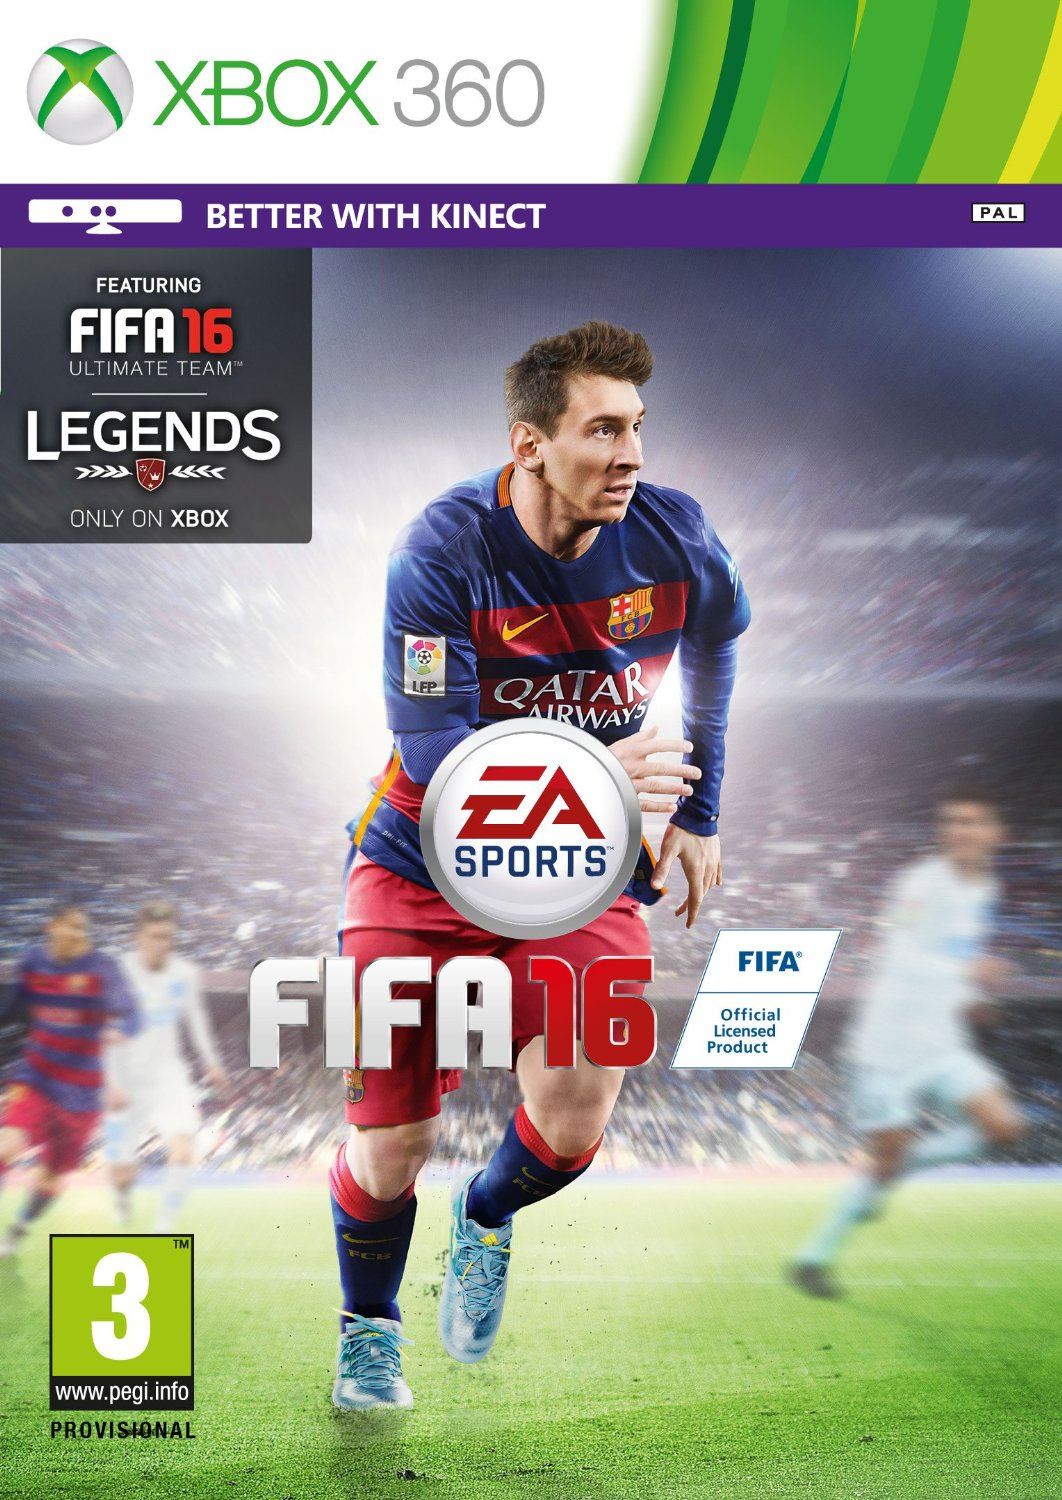 FIFA 16 (Xbox 360) for Rs 1999 (43% off)